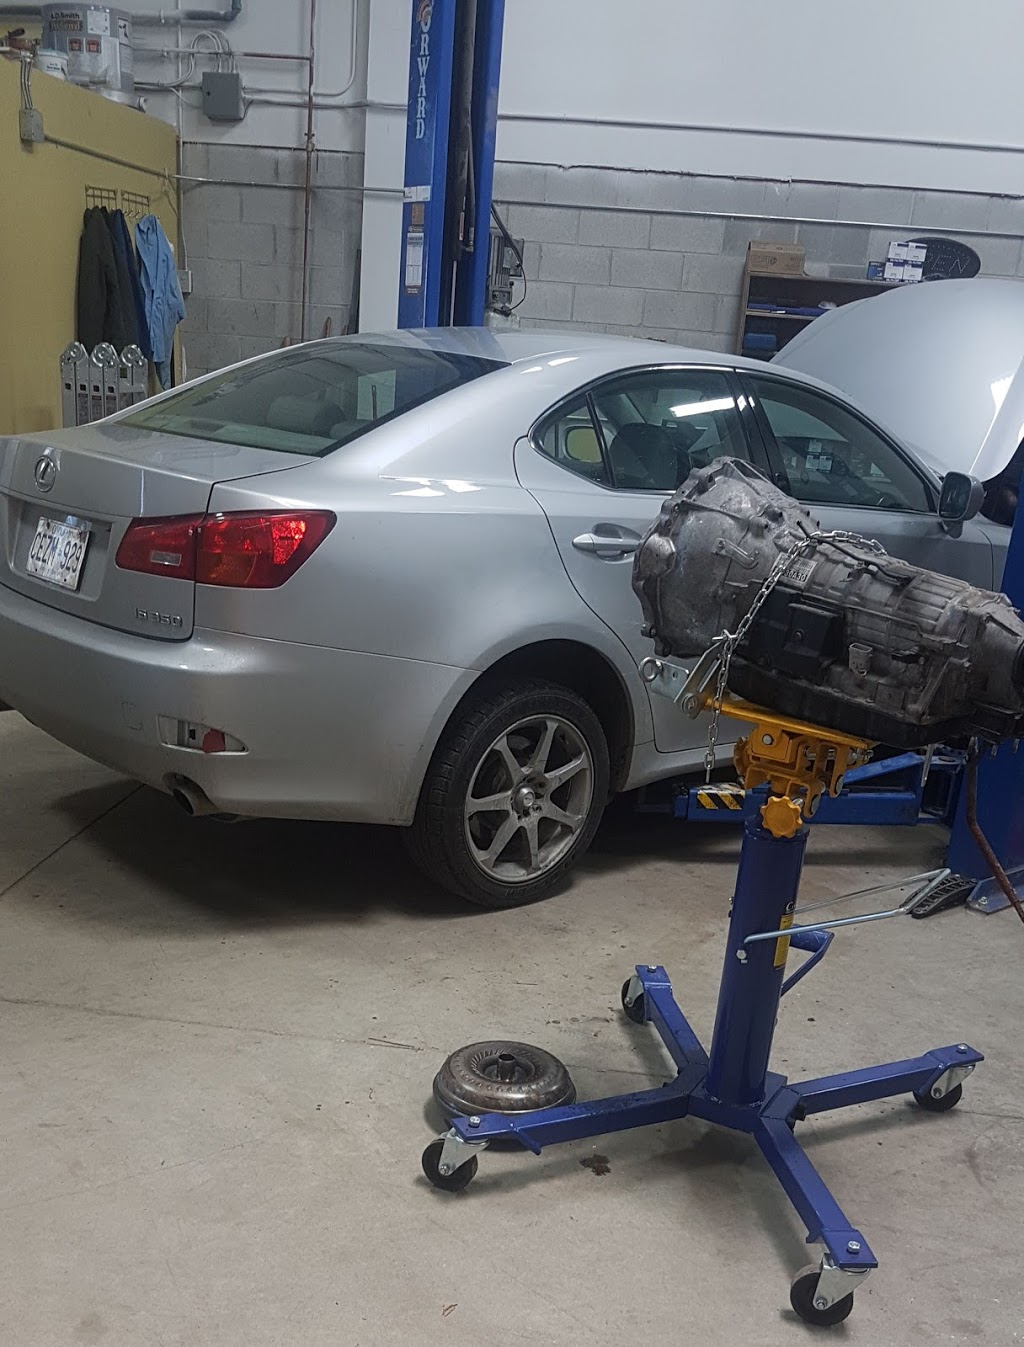 Back2Road Automotive | car repair | 170 Glidden Rd Unit # 3, Brampton, ON L6W 3L2, Canada | 9054500055 OR +1 905-450-0055